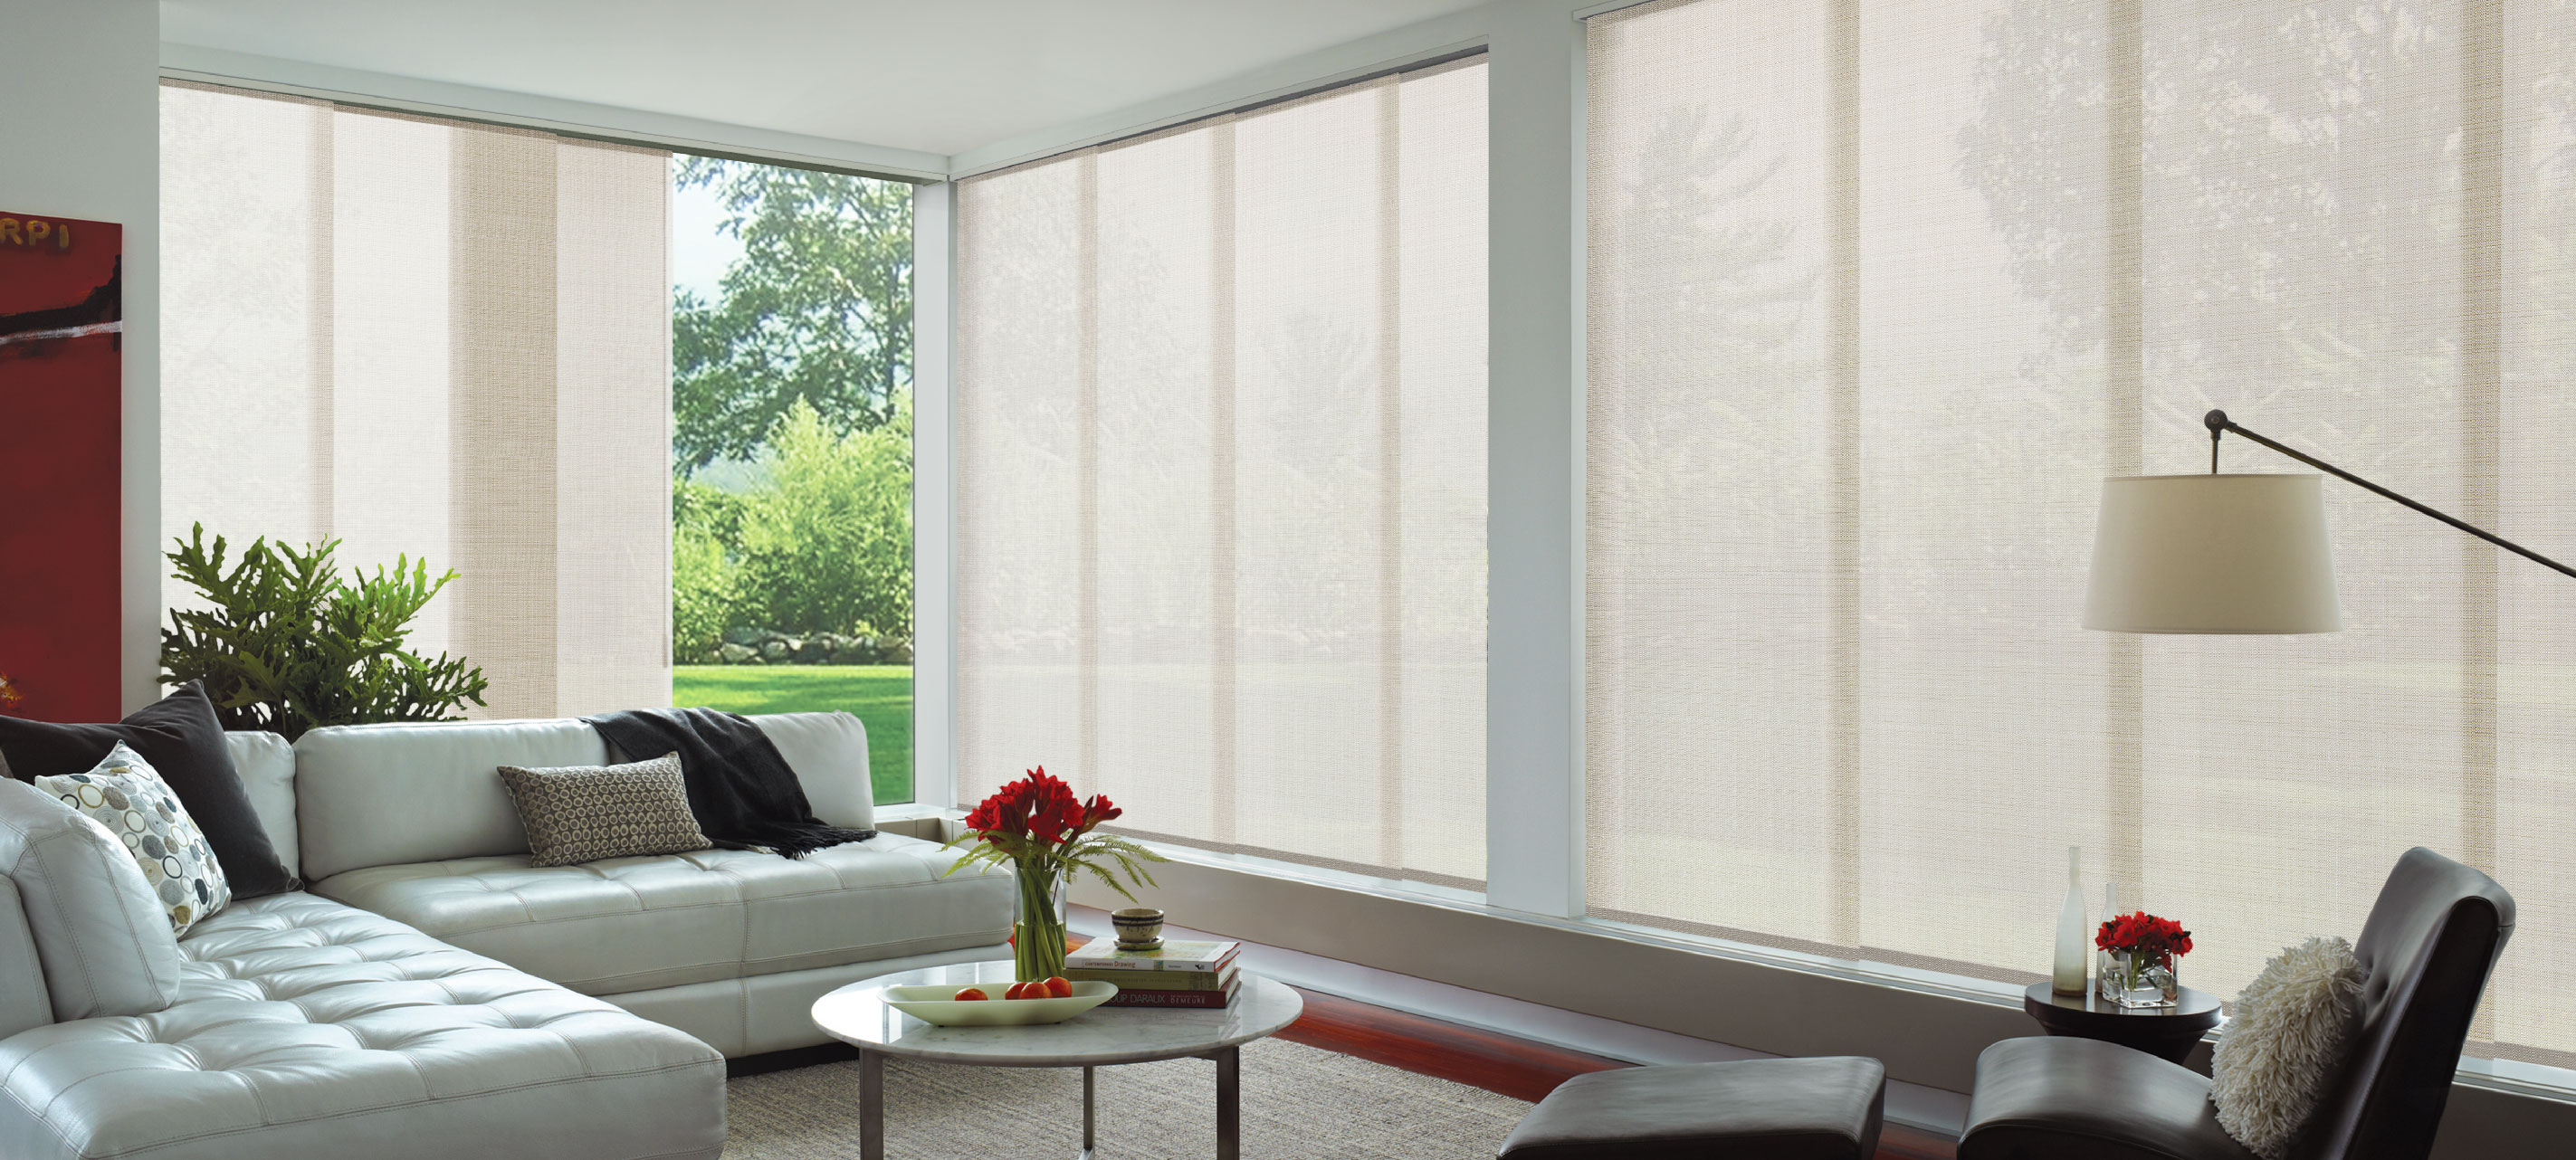 LuxaflexPanel Glide by Luxaflex Window Fashions Gallery, a Blinds for sale on Style Sourcebook